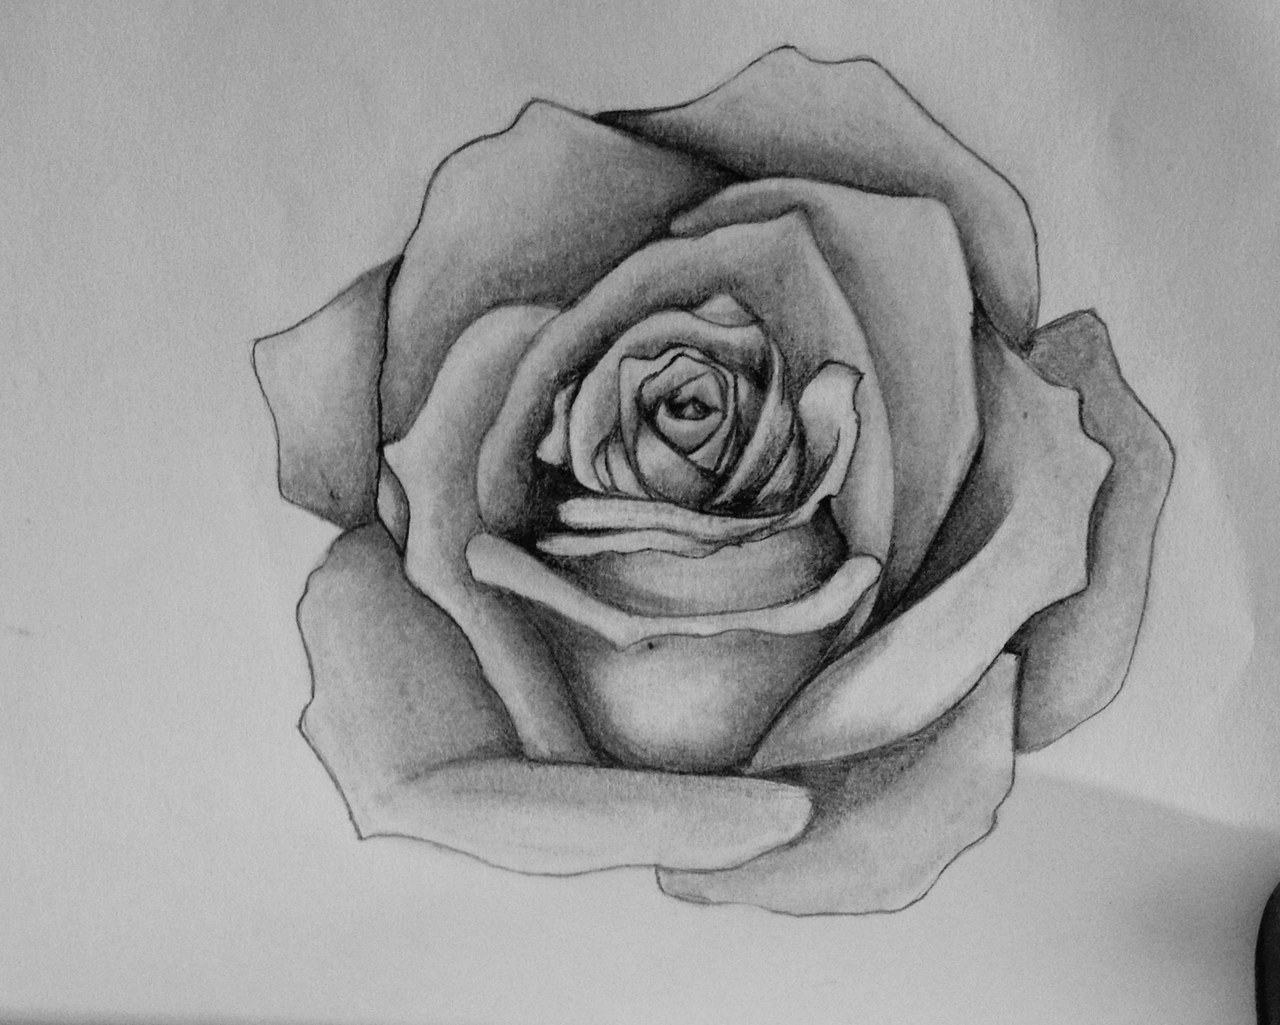 Rose for How to draw a black and white rose